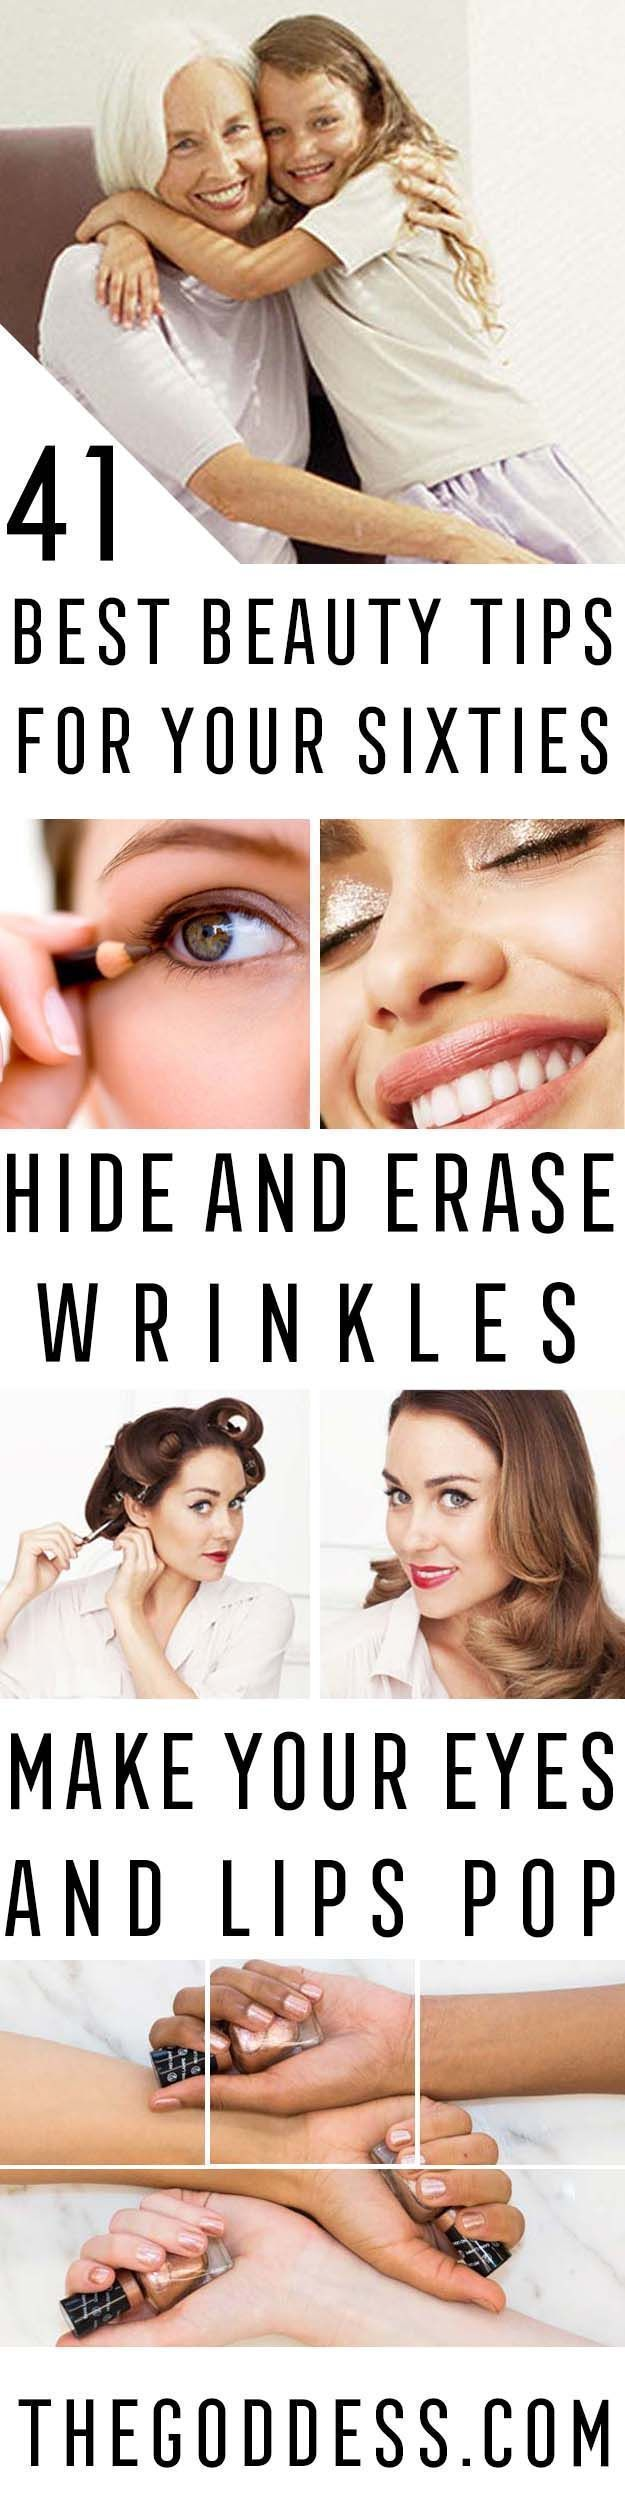 Best Beauty Tips For Your 60s Healthy Skin Care Tips For